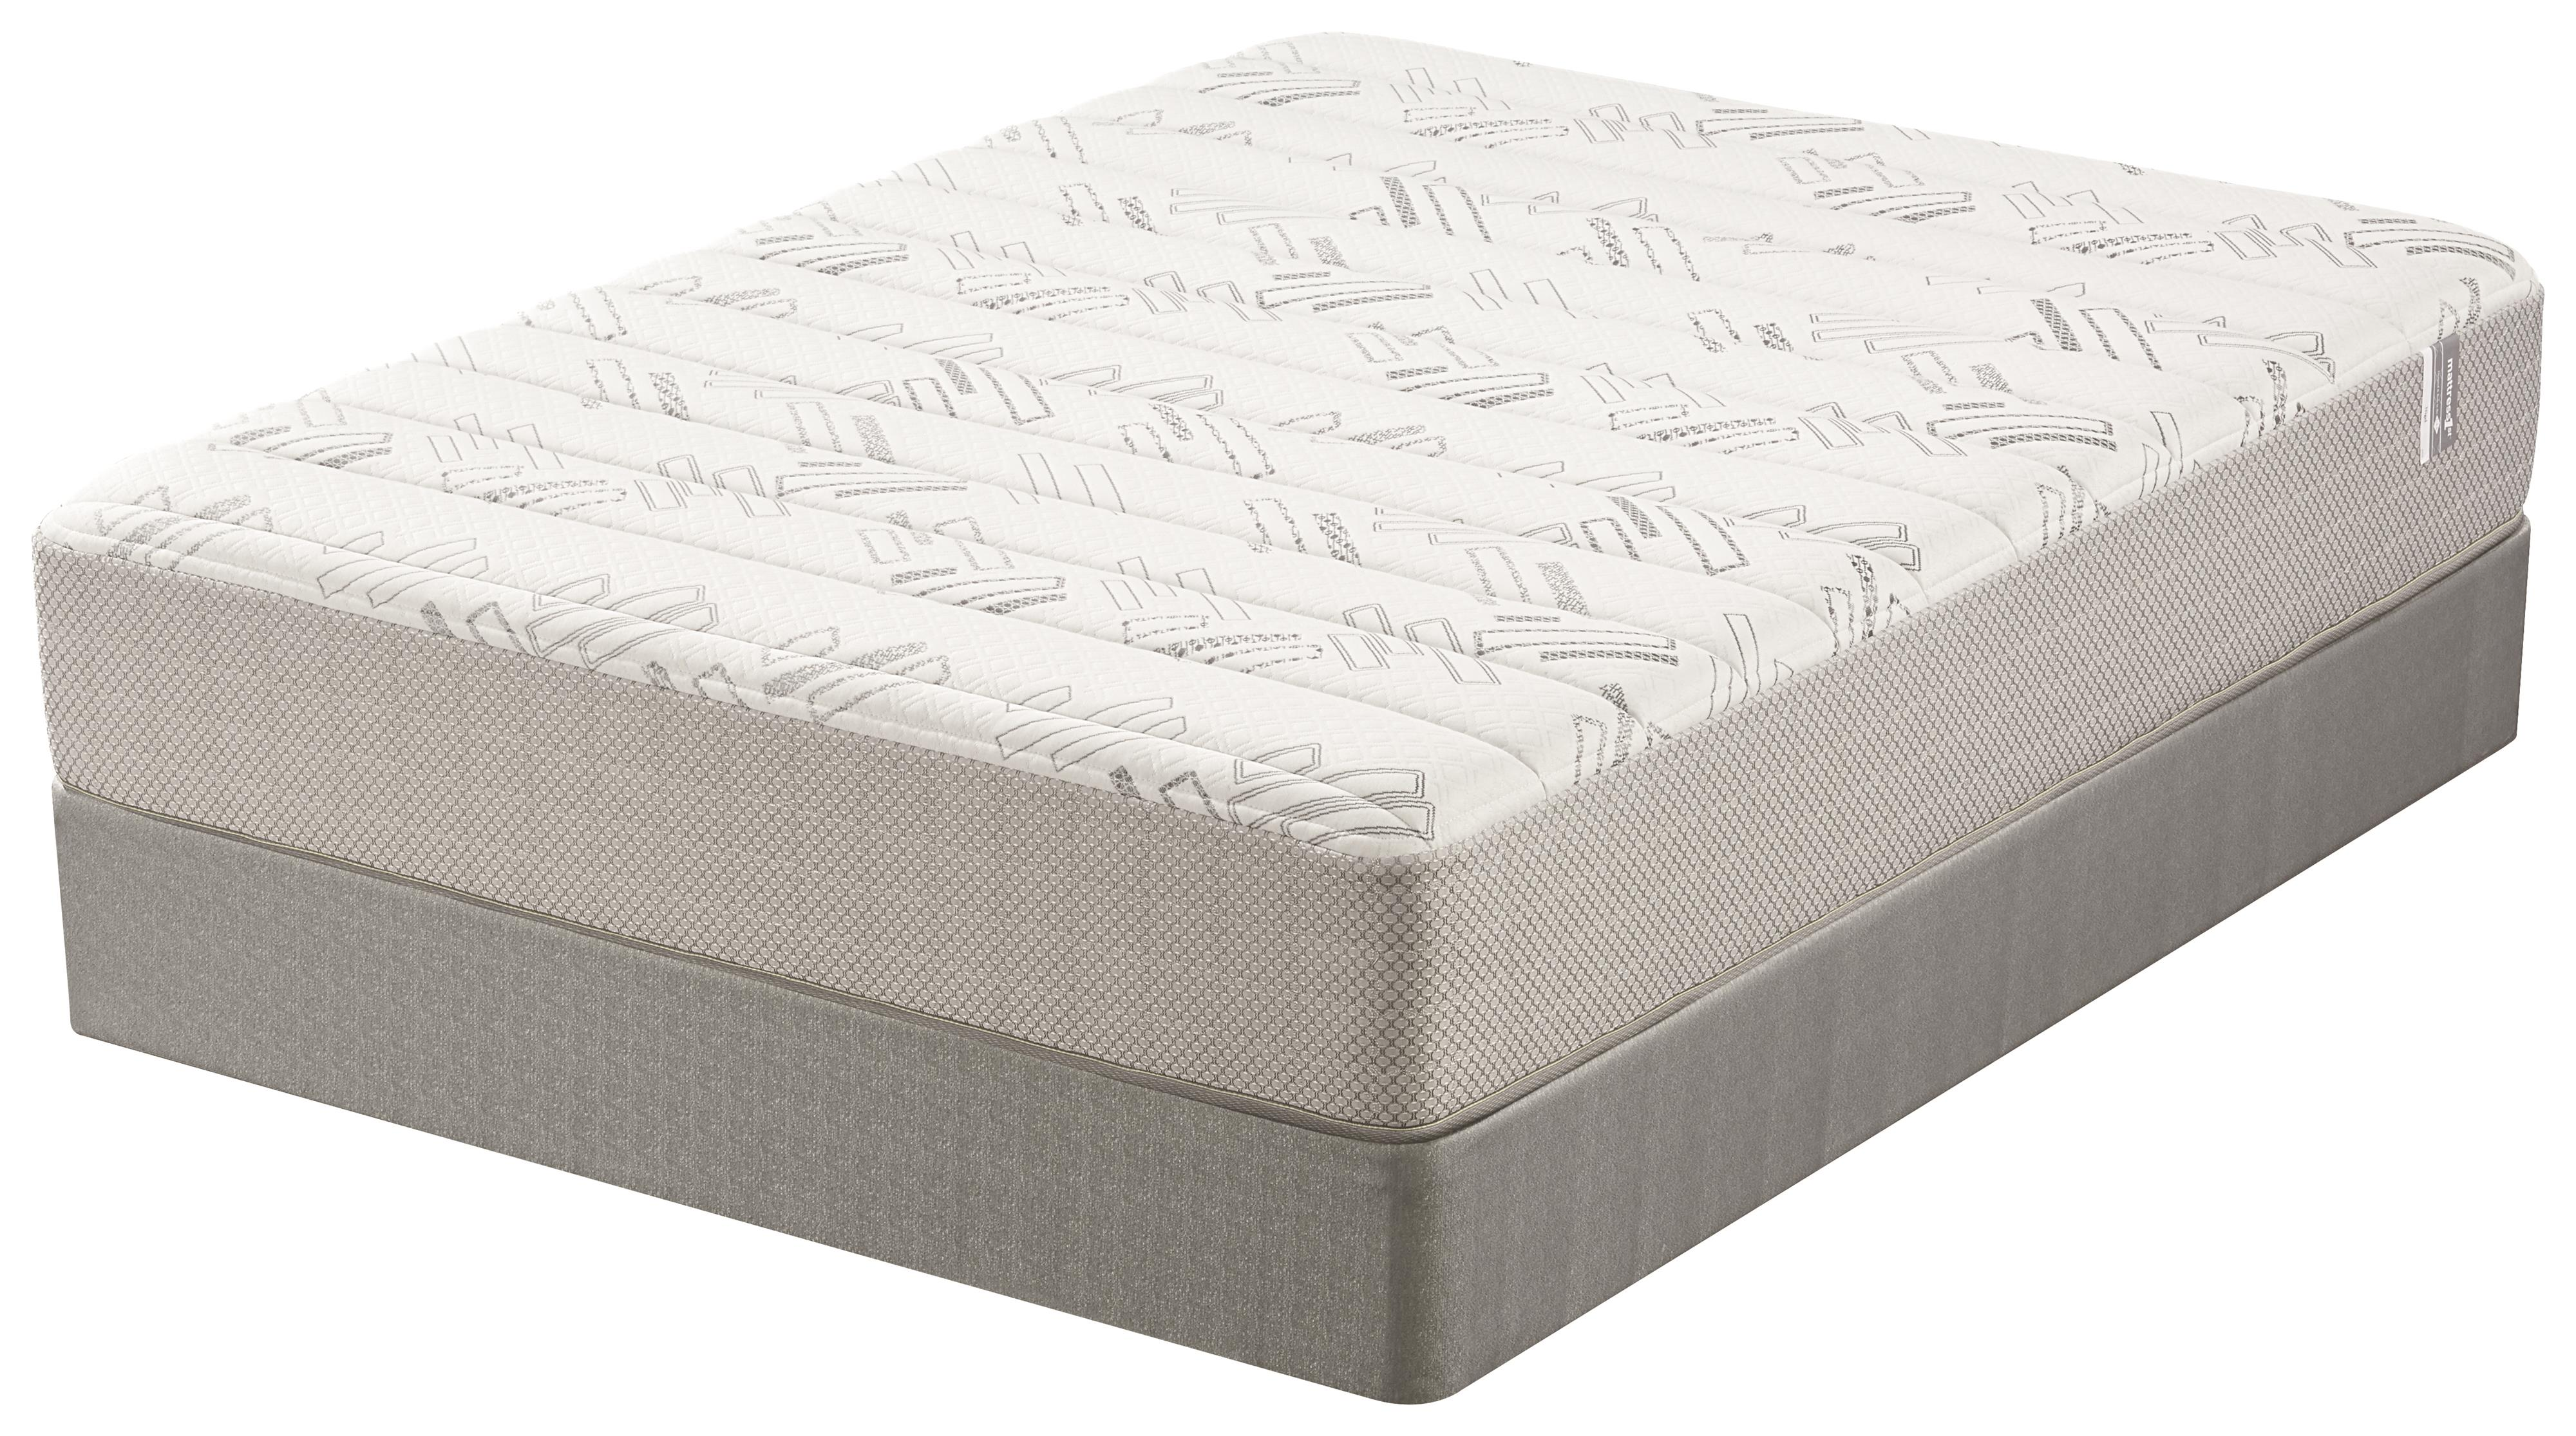 Mattress 1st Nigel Queen Plush Memory Foam Mattress Set - Item Number: 500955742-Q+500963299Q